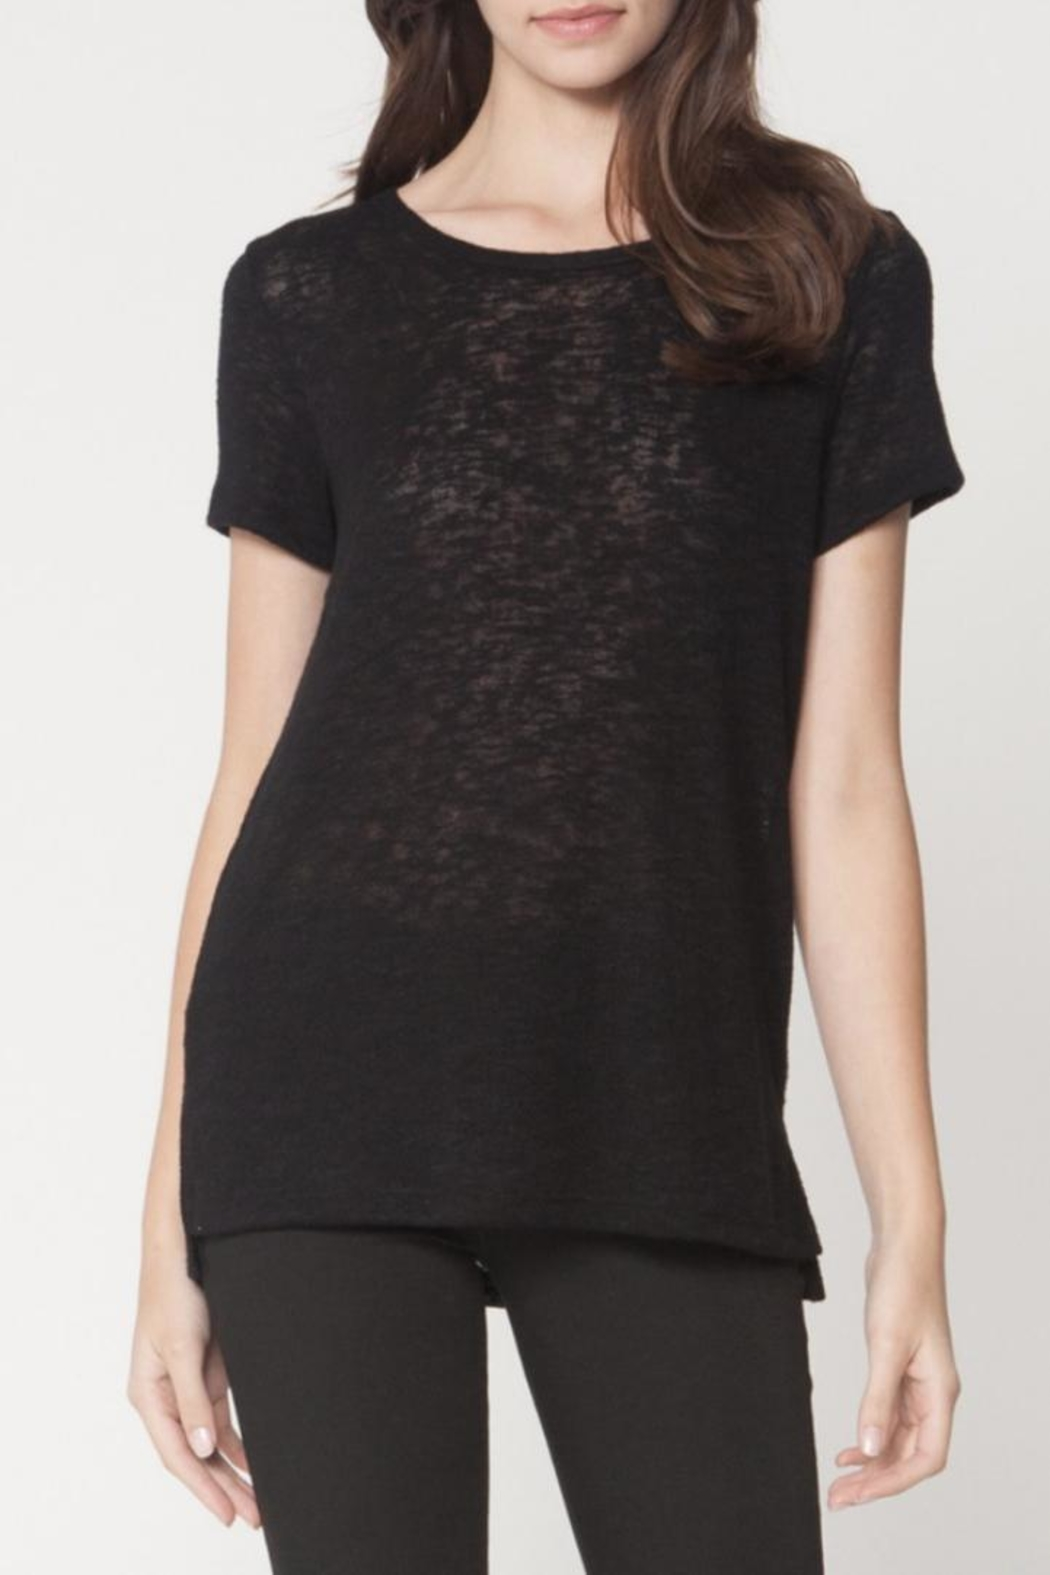 Michelle by Comune Soft Black Tee - Main Image